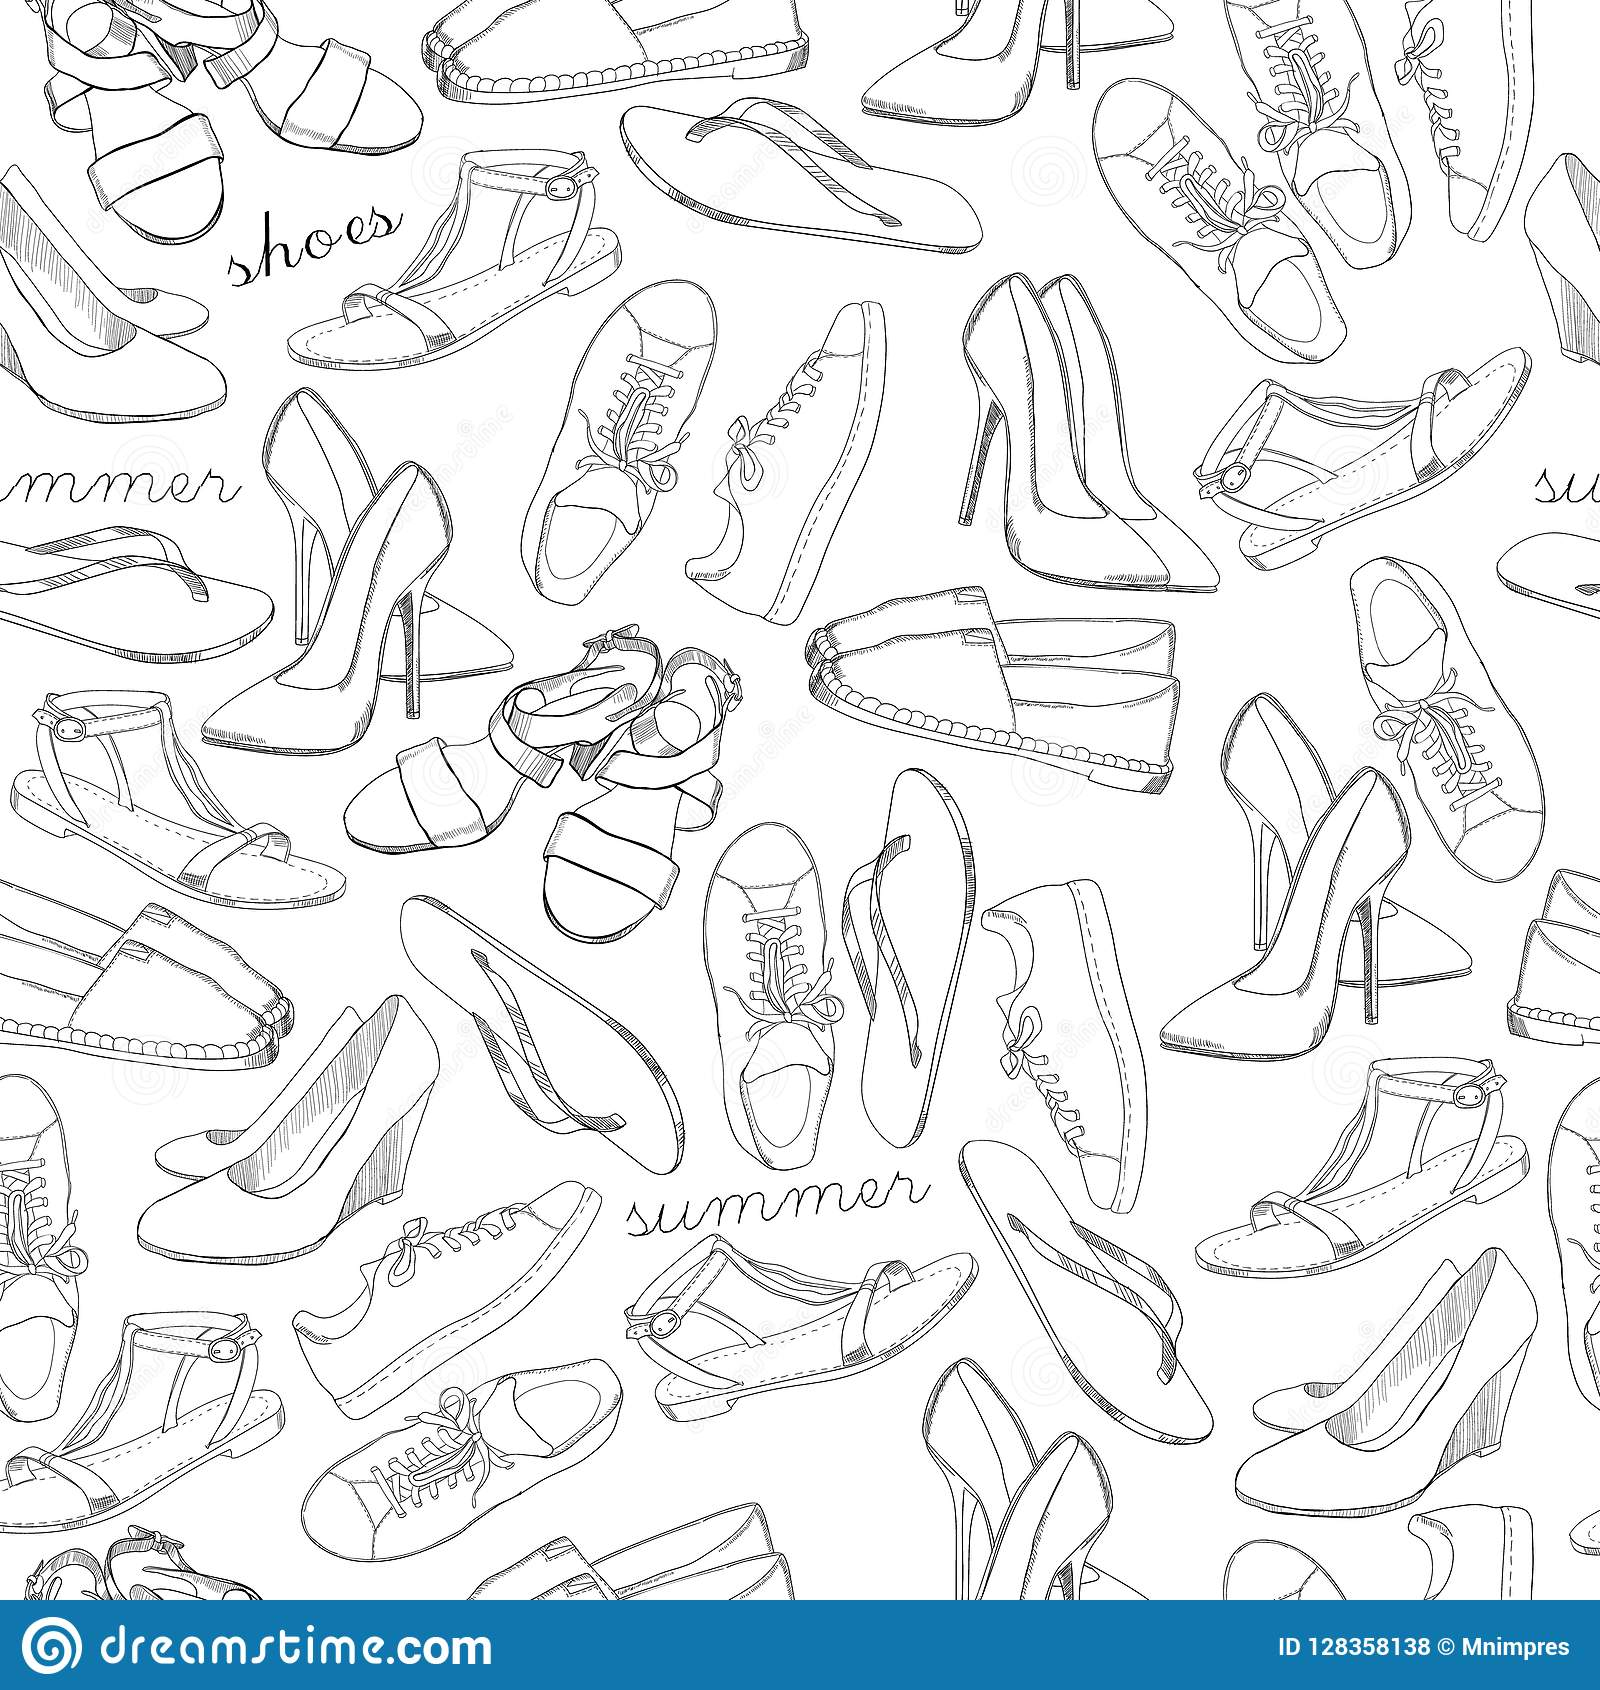 e1b28bc1a94ad Vector illustration of Hand drawn sketch seamless pattern of Shoes. Running  shoes sneakers